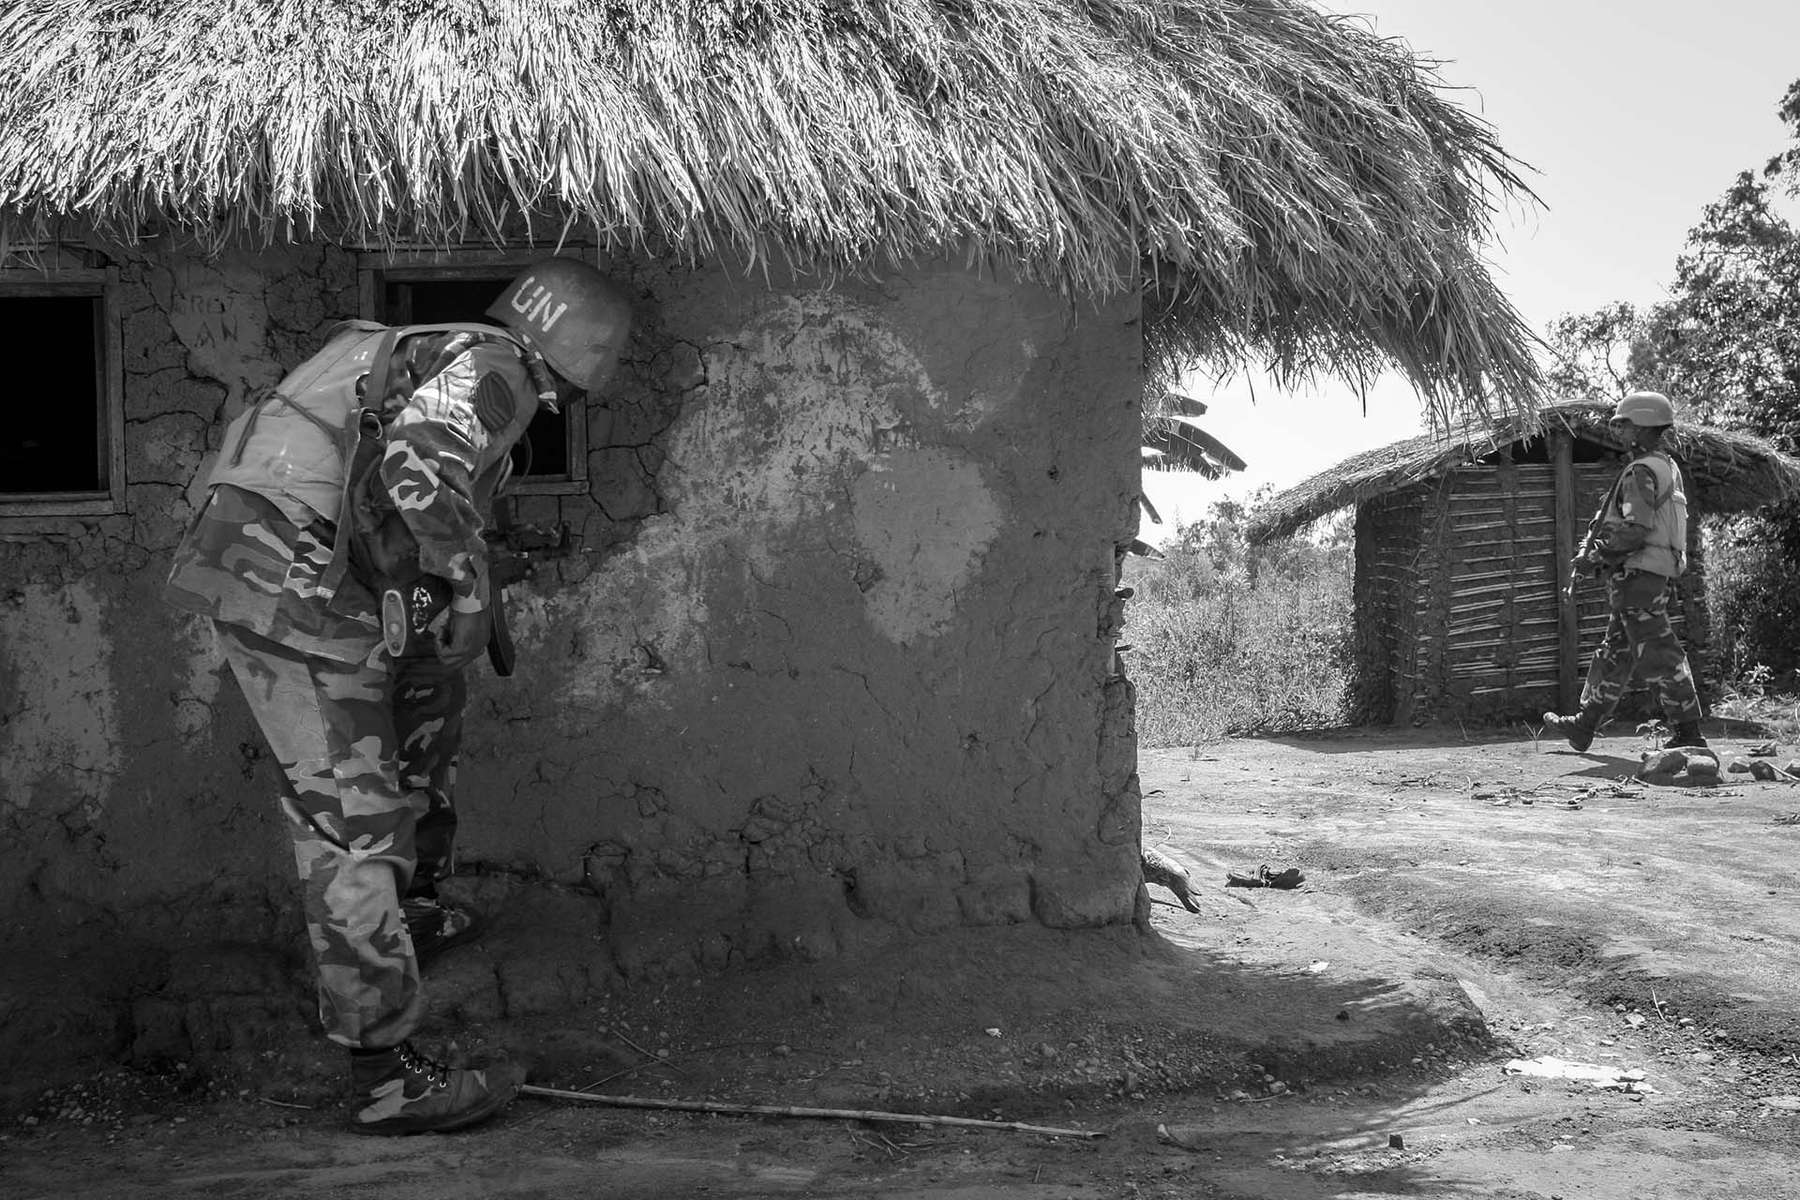 UN peacekeeper from Bangladesh conduct patrol in the village of Kaswara where there was recent fighting between militia and government solders supported by UN.